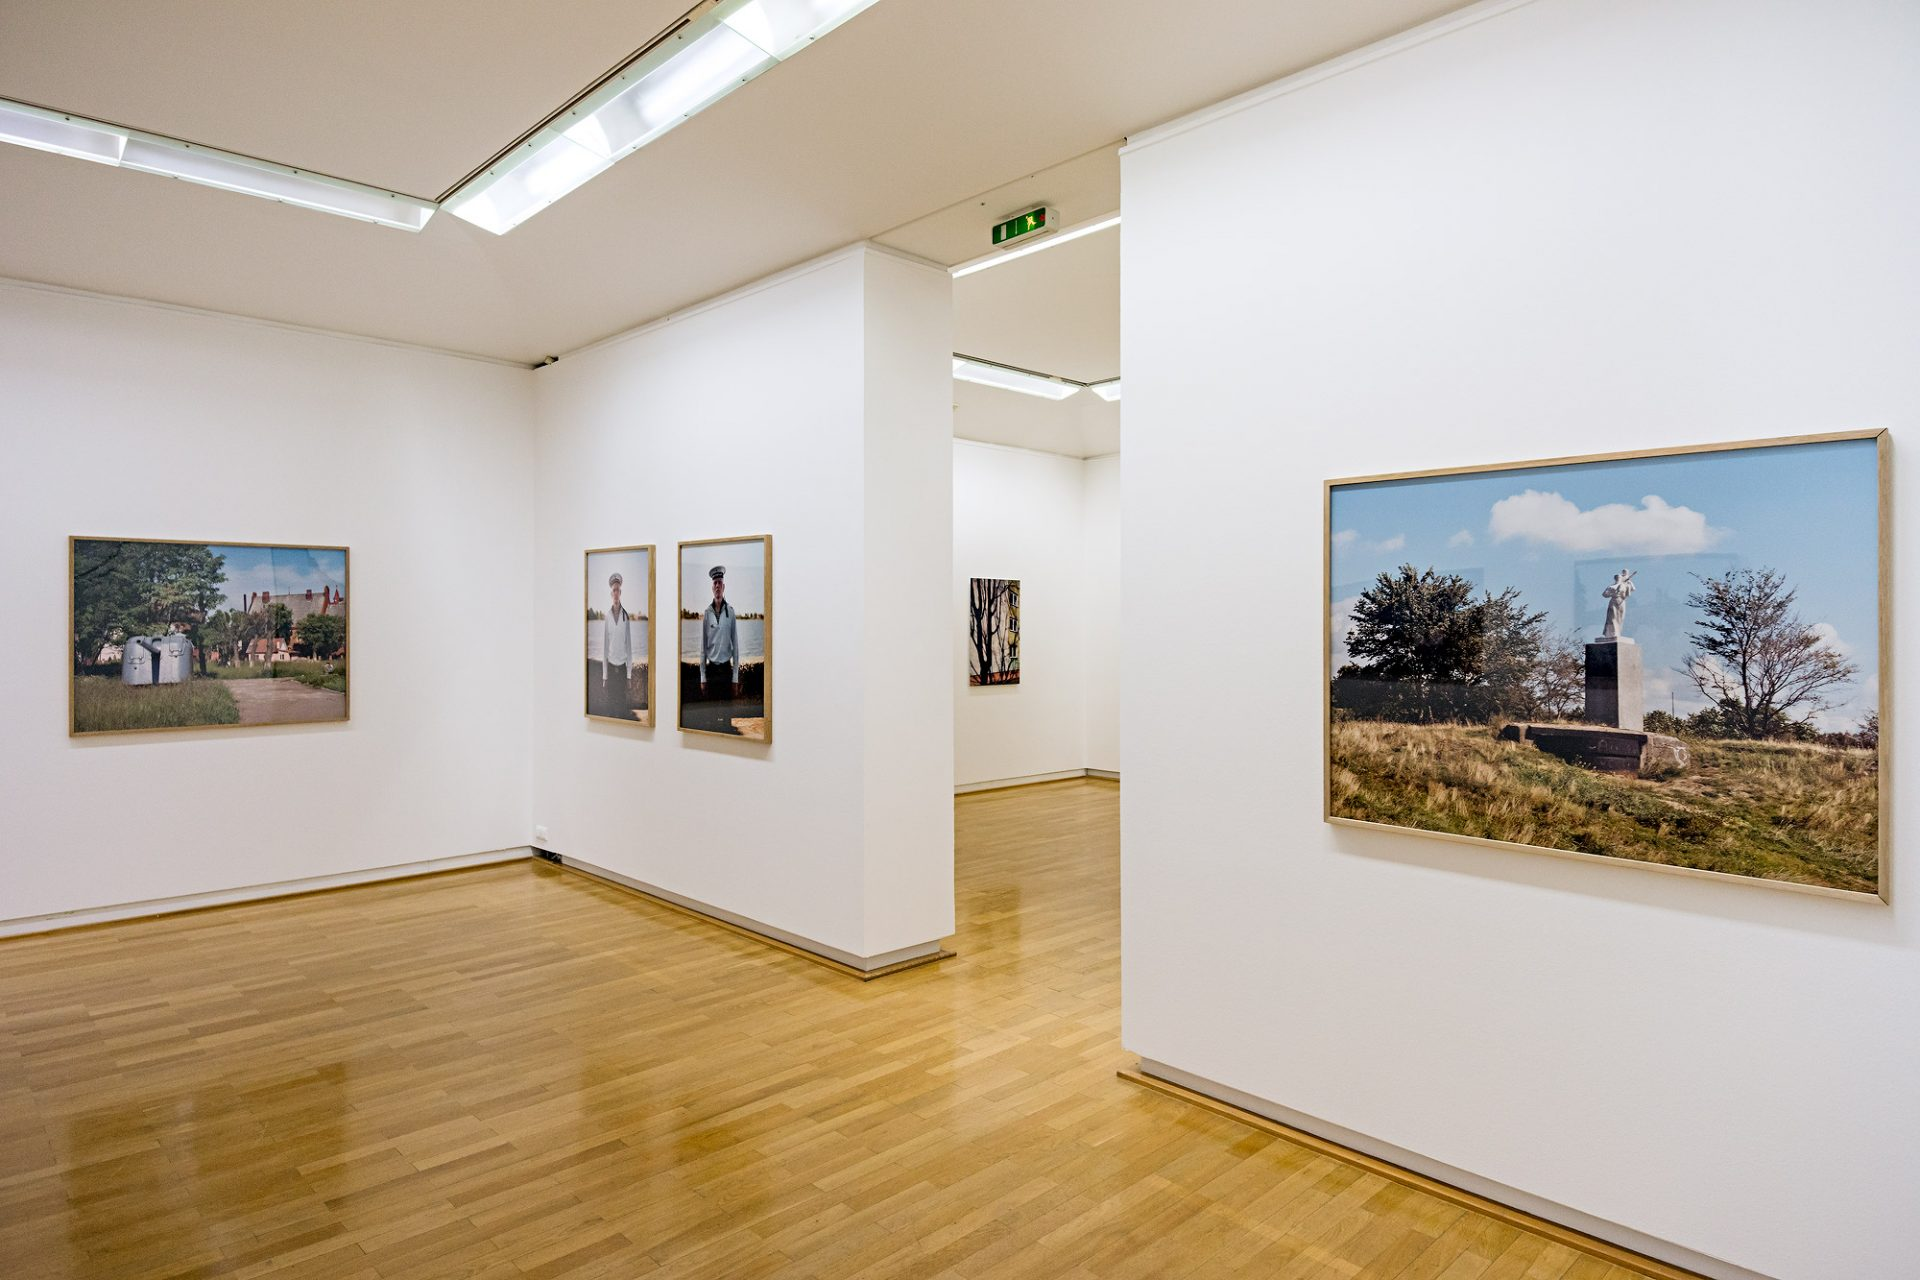 Home? East Europe in contemporary photography), Kunstforum Ostdeutsche Galerie Regensburg, Germany, curated by Dr. Agnes Matthias